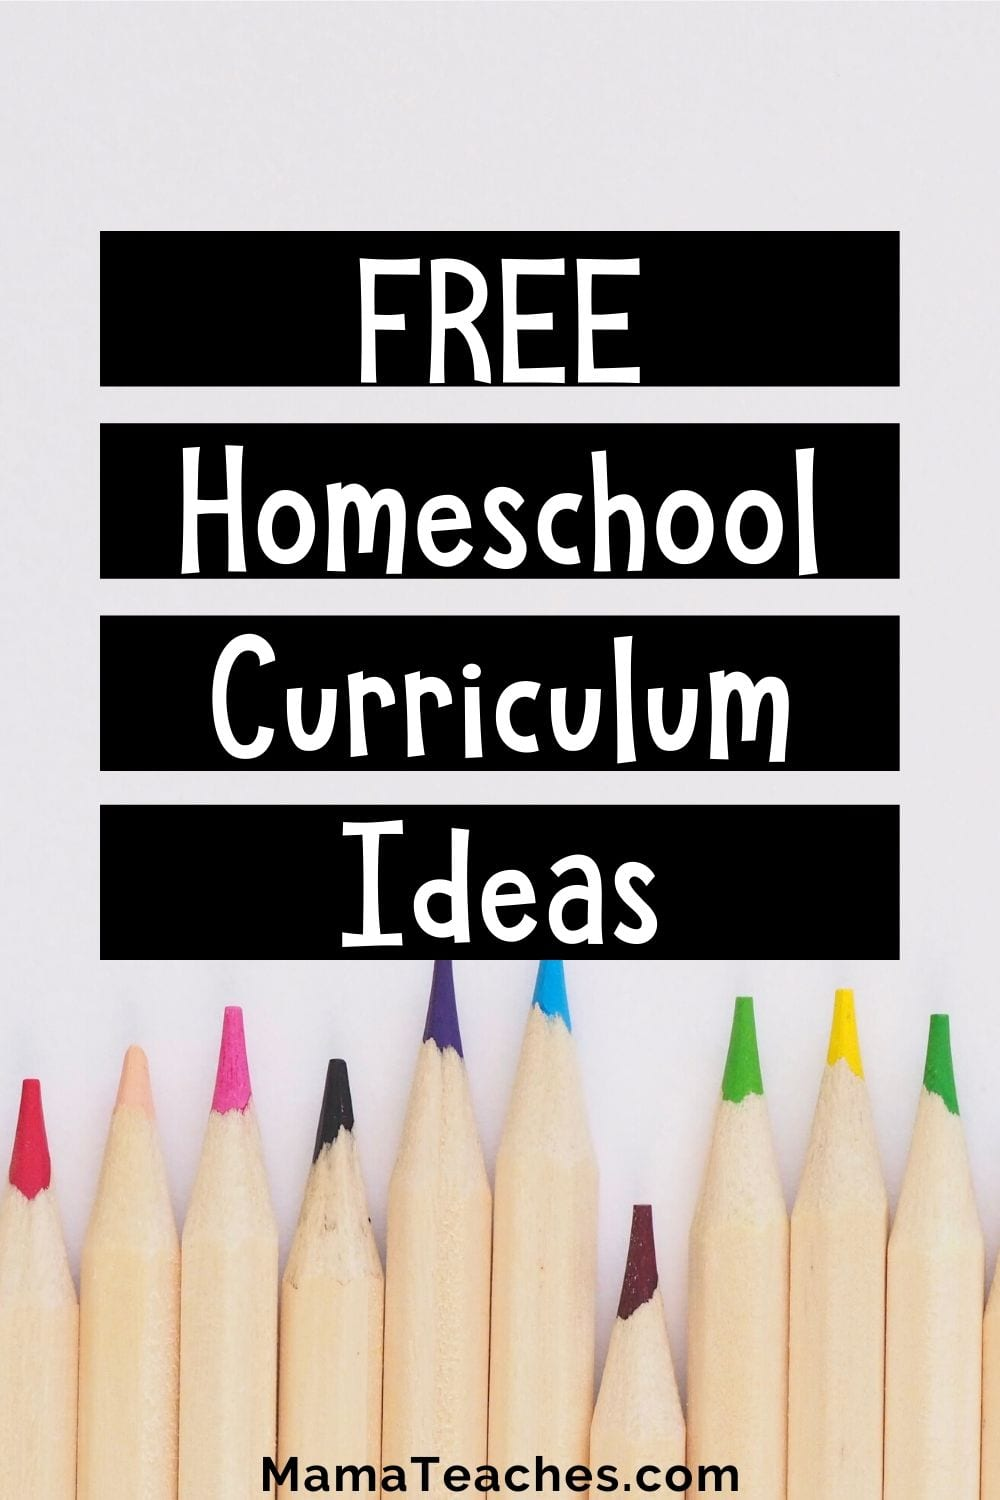 Free and Fun Homeschool Curriculum Ideas for Homeschooling on a Budget - MamaTeaches.com